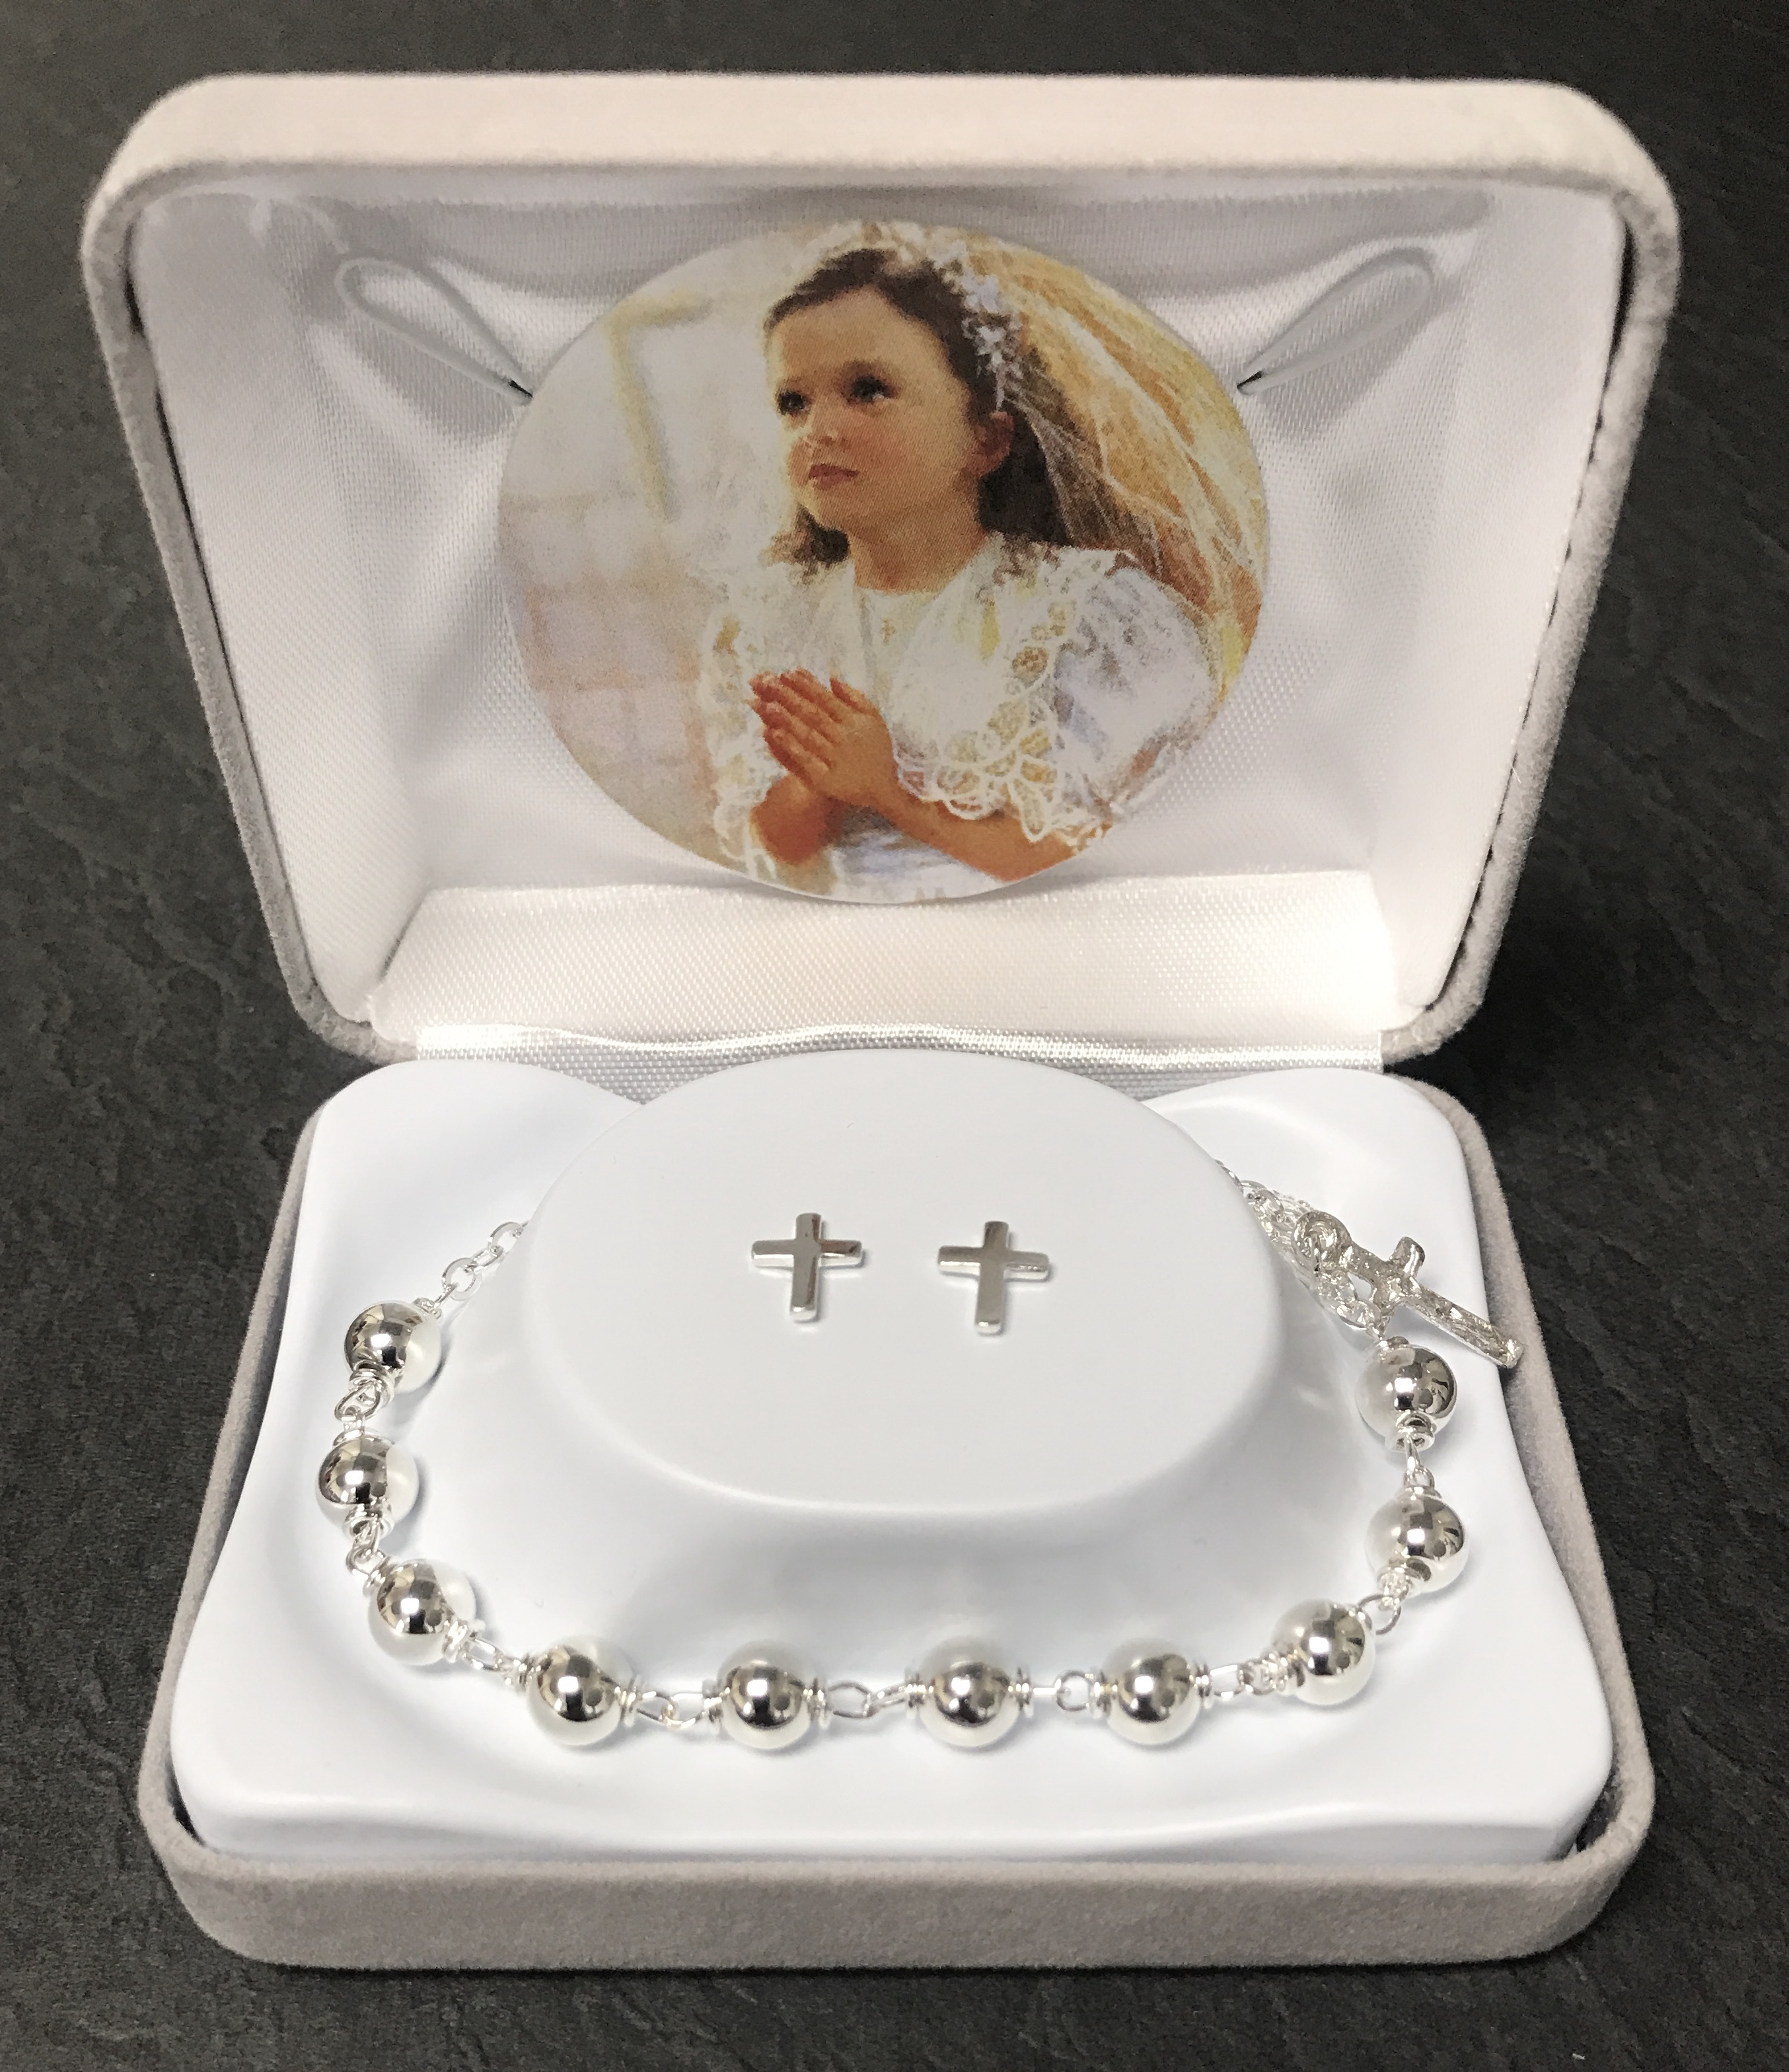 6mm SILVER FC BRACELET WITH EARRINGS GIFT BOXED